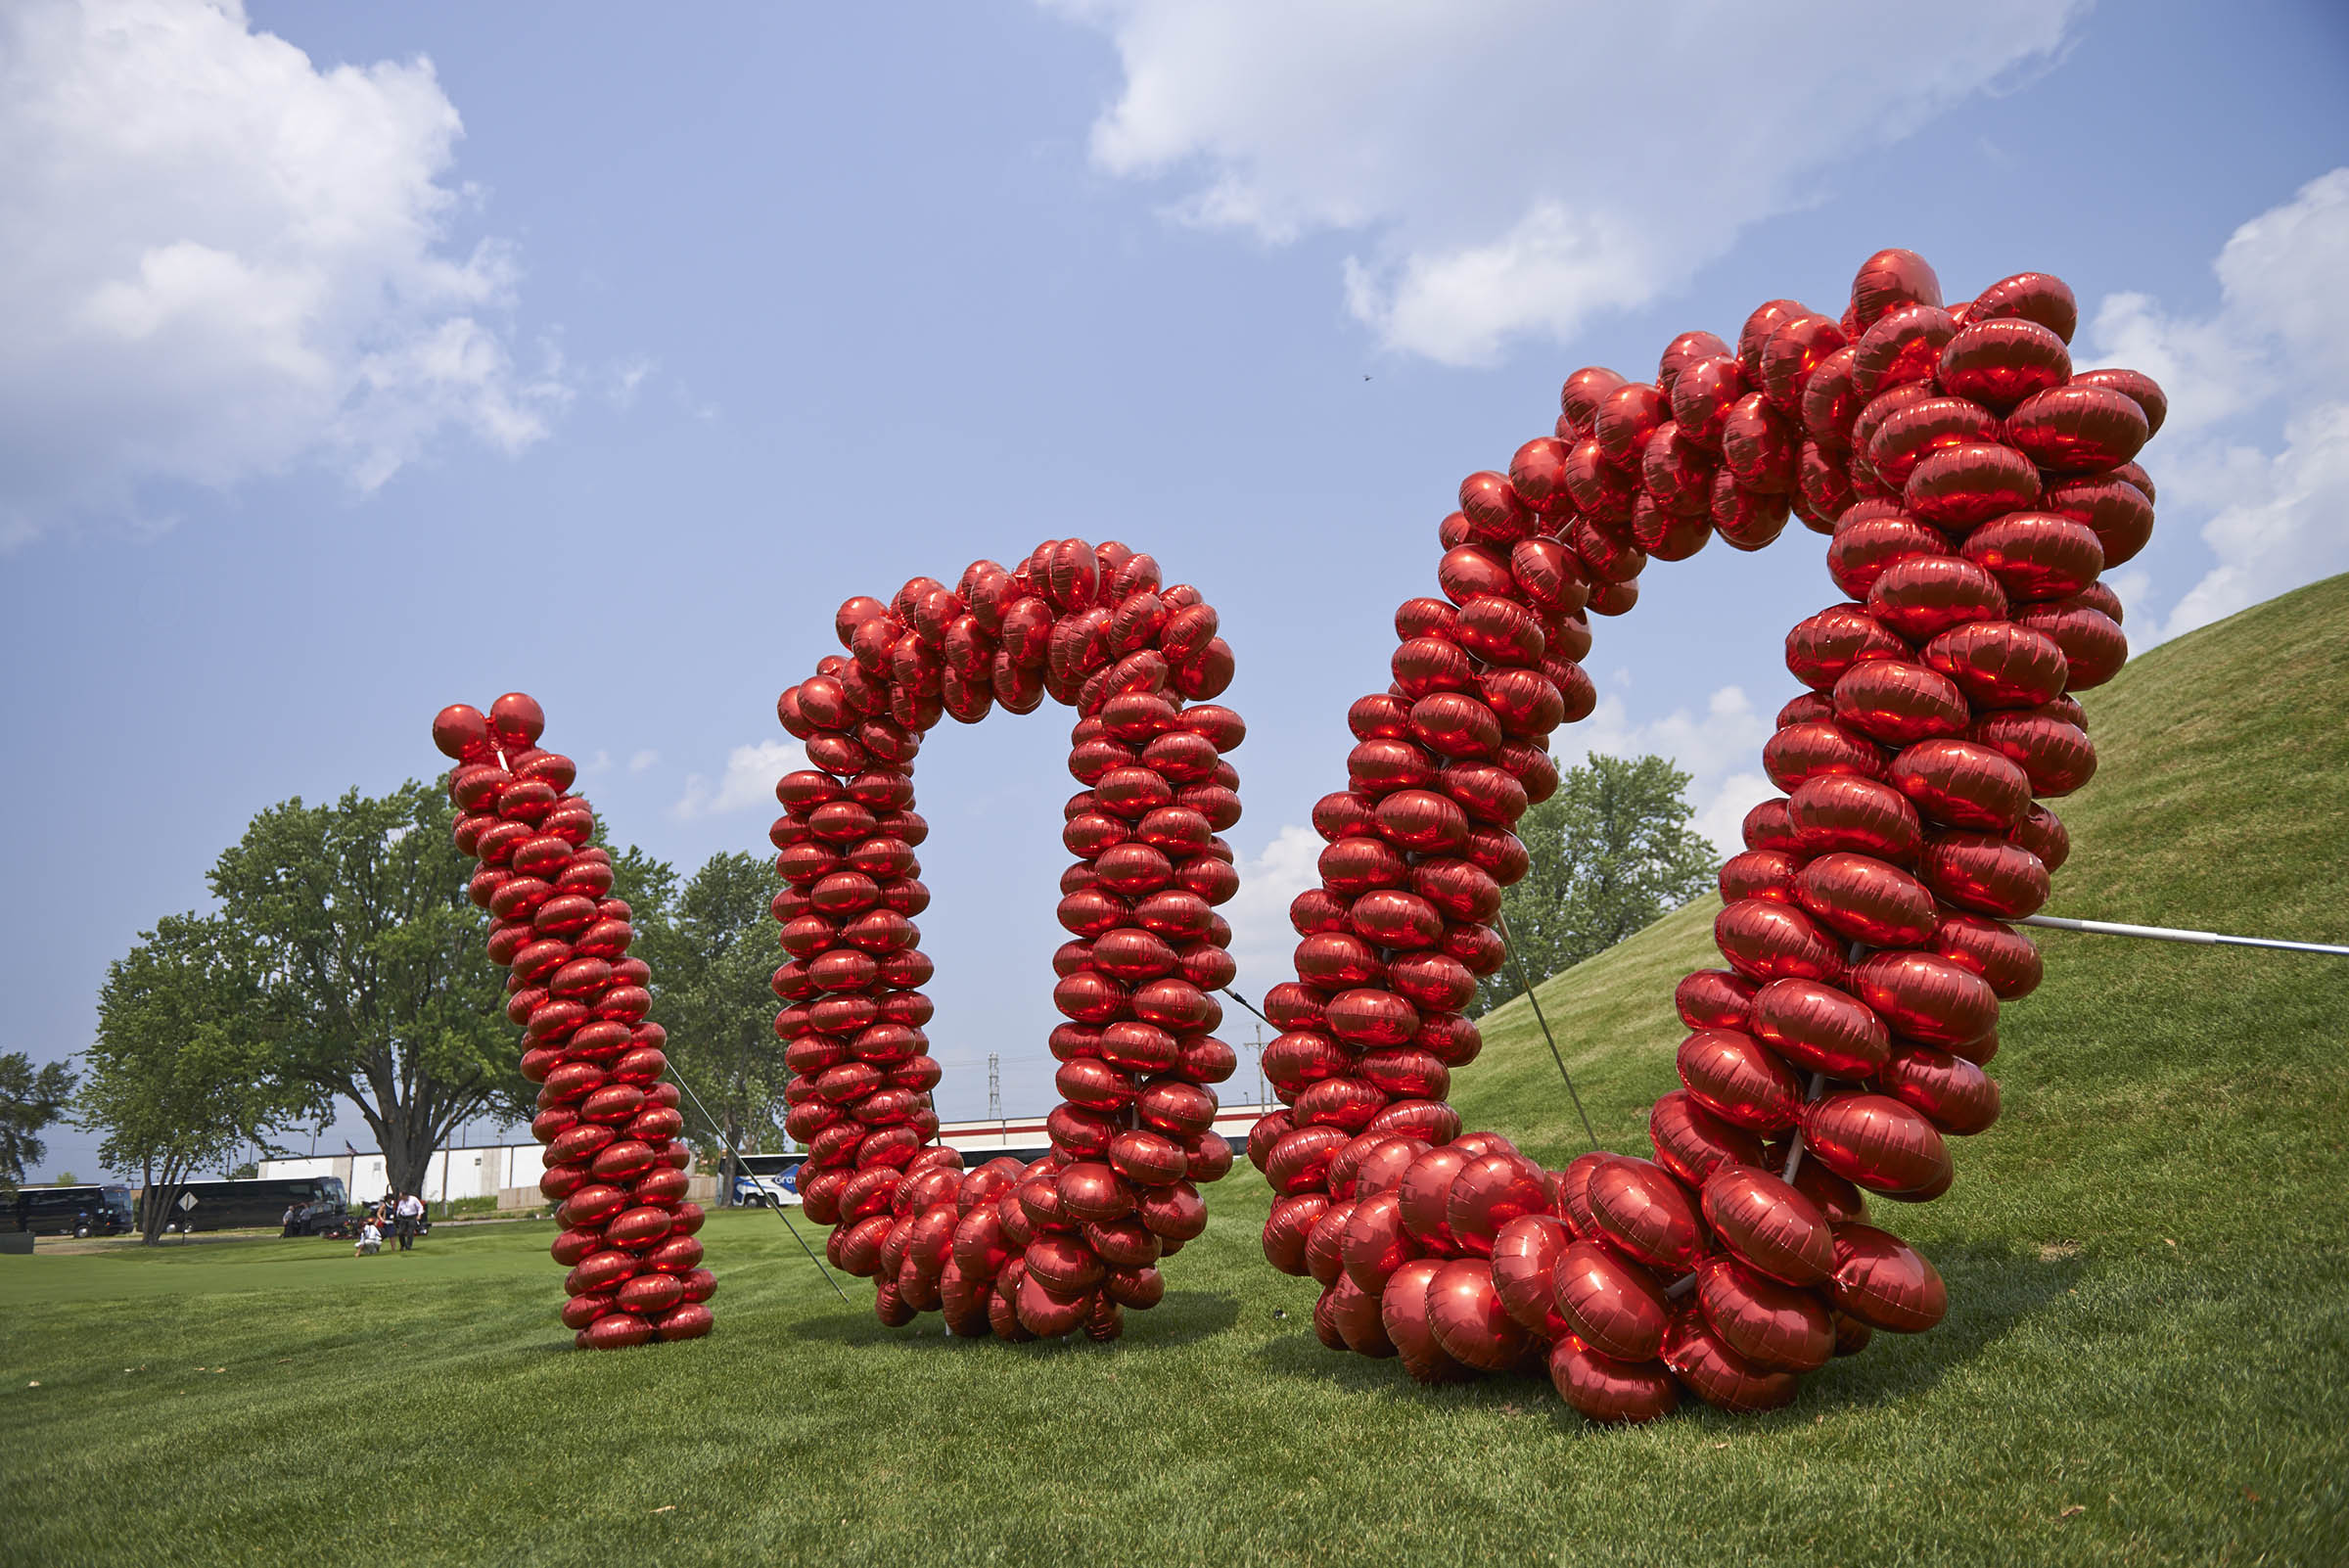 The Toro Company Celebrates 100th Anniversary